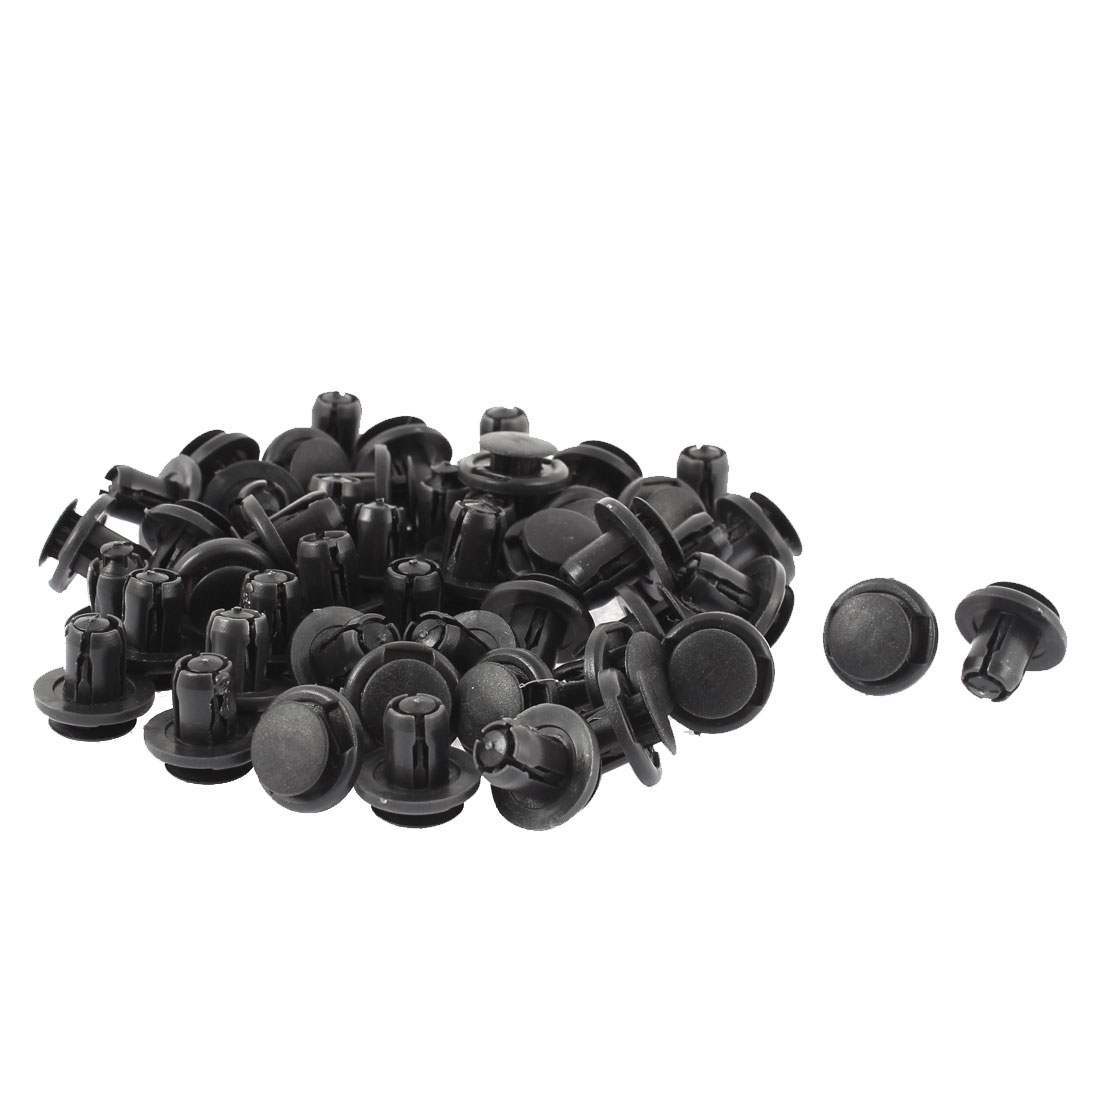 9mm x 18mm x 10mm Plastic Motor Car Bumper Push Clips Rivet Fastener 50pcs